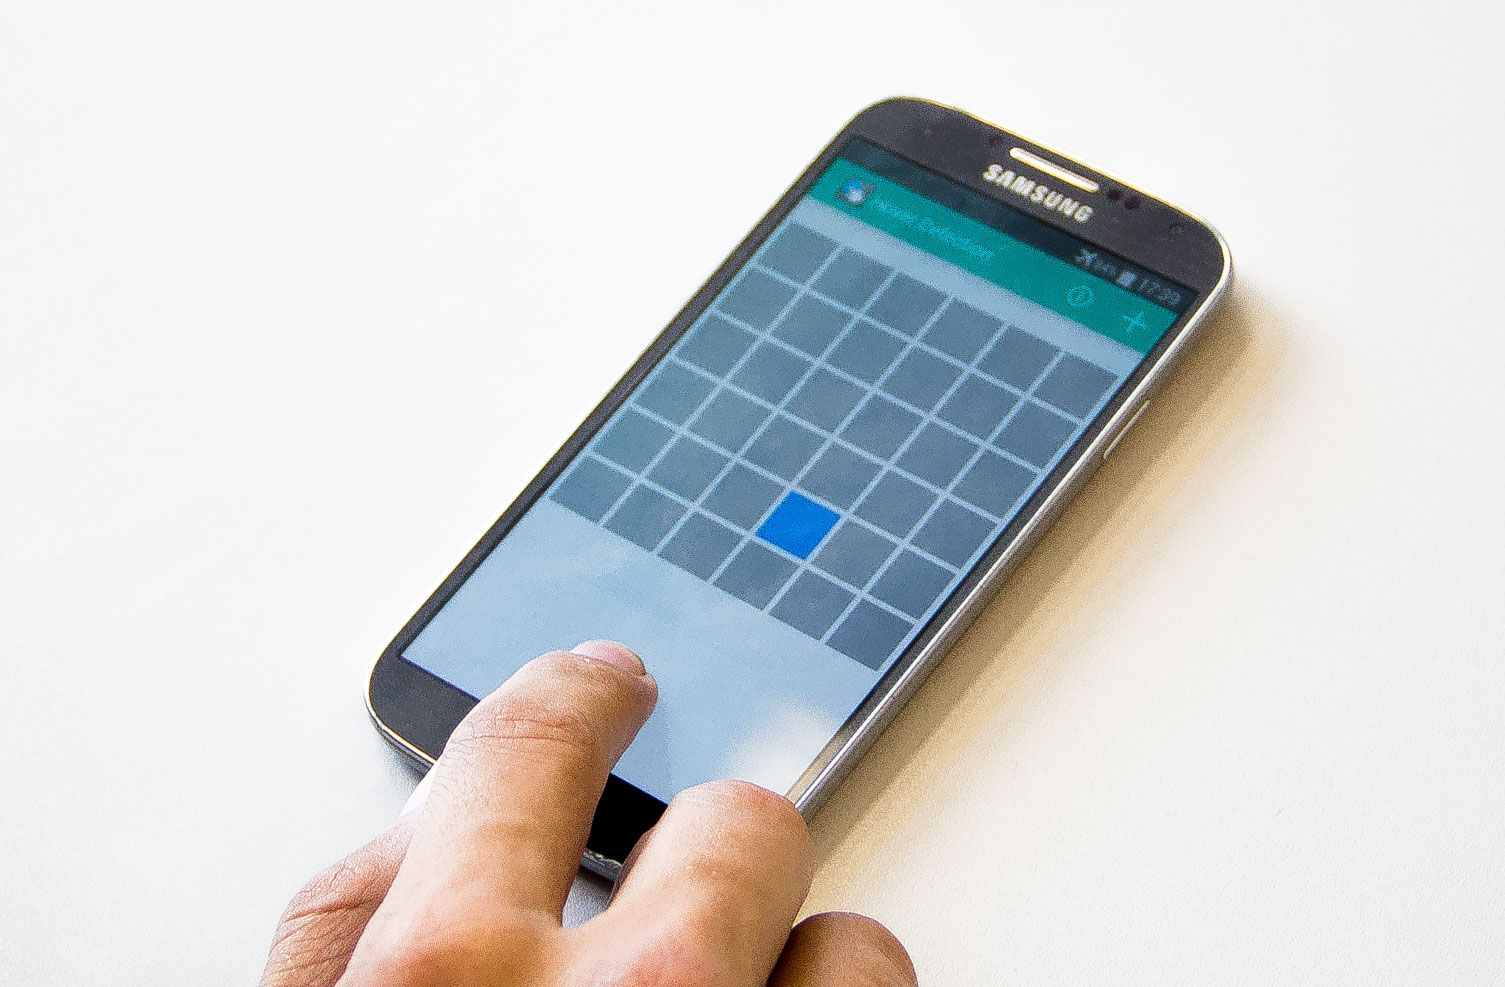 Usability testing of proximity detection